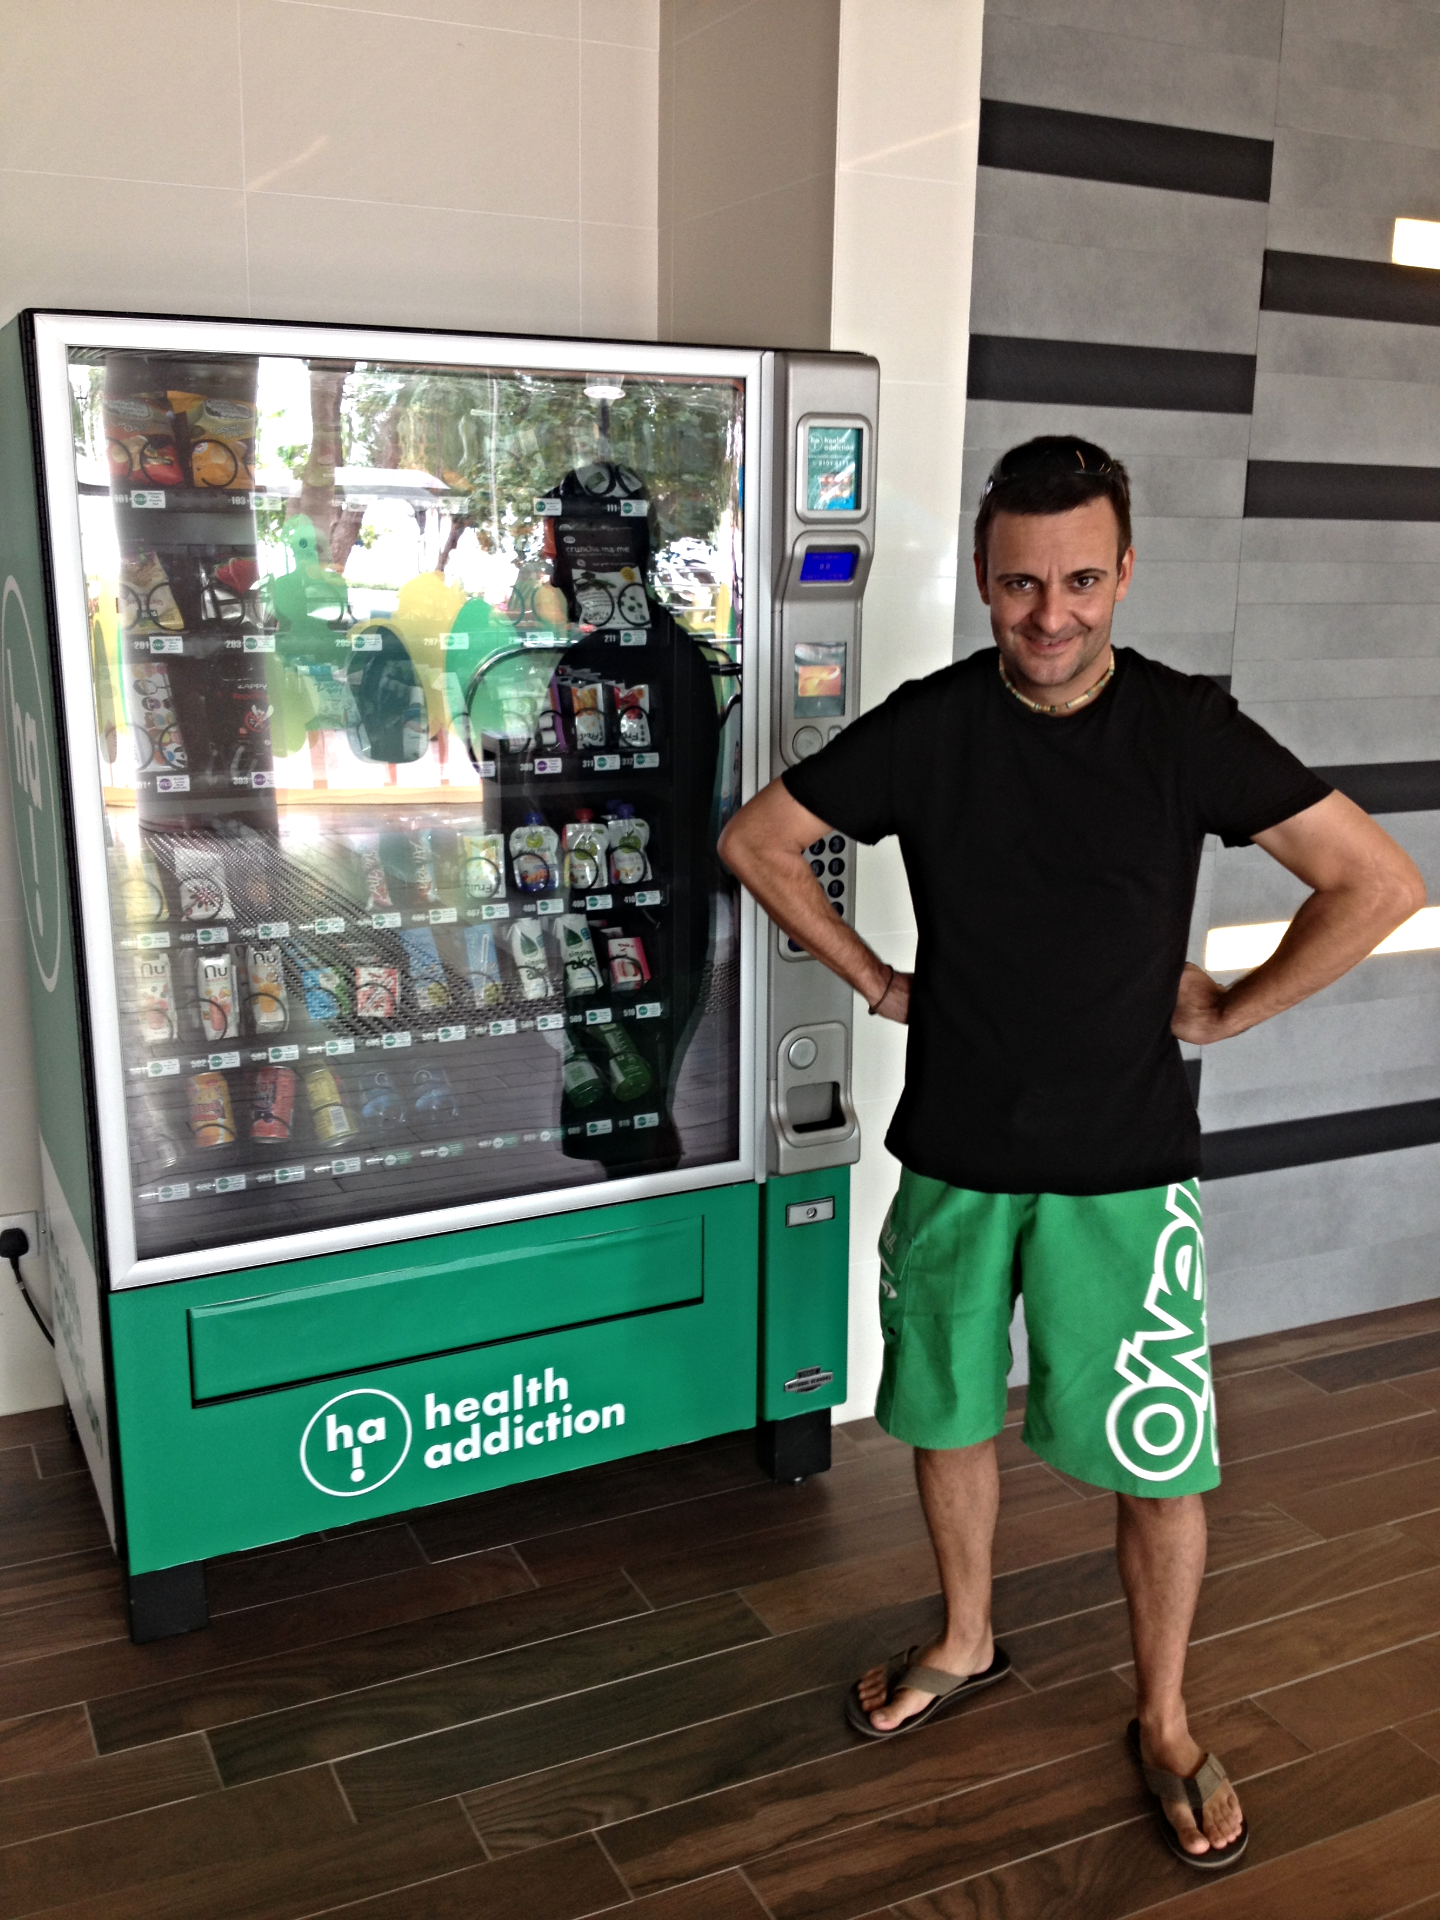 Health Addiction Vending Machine